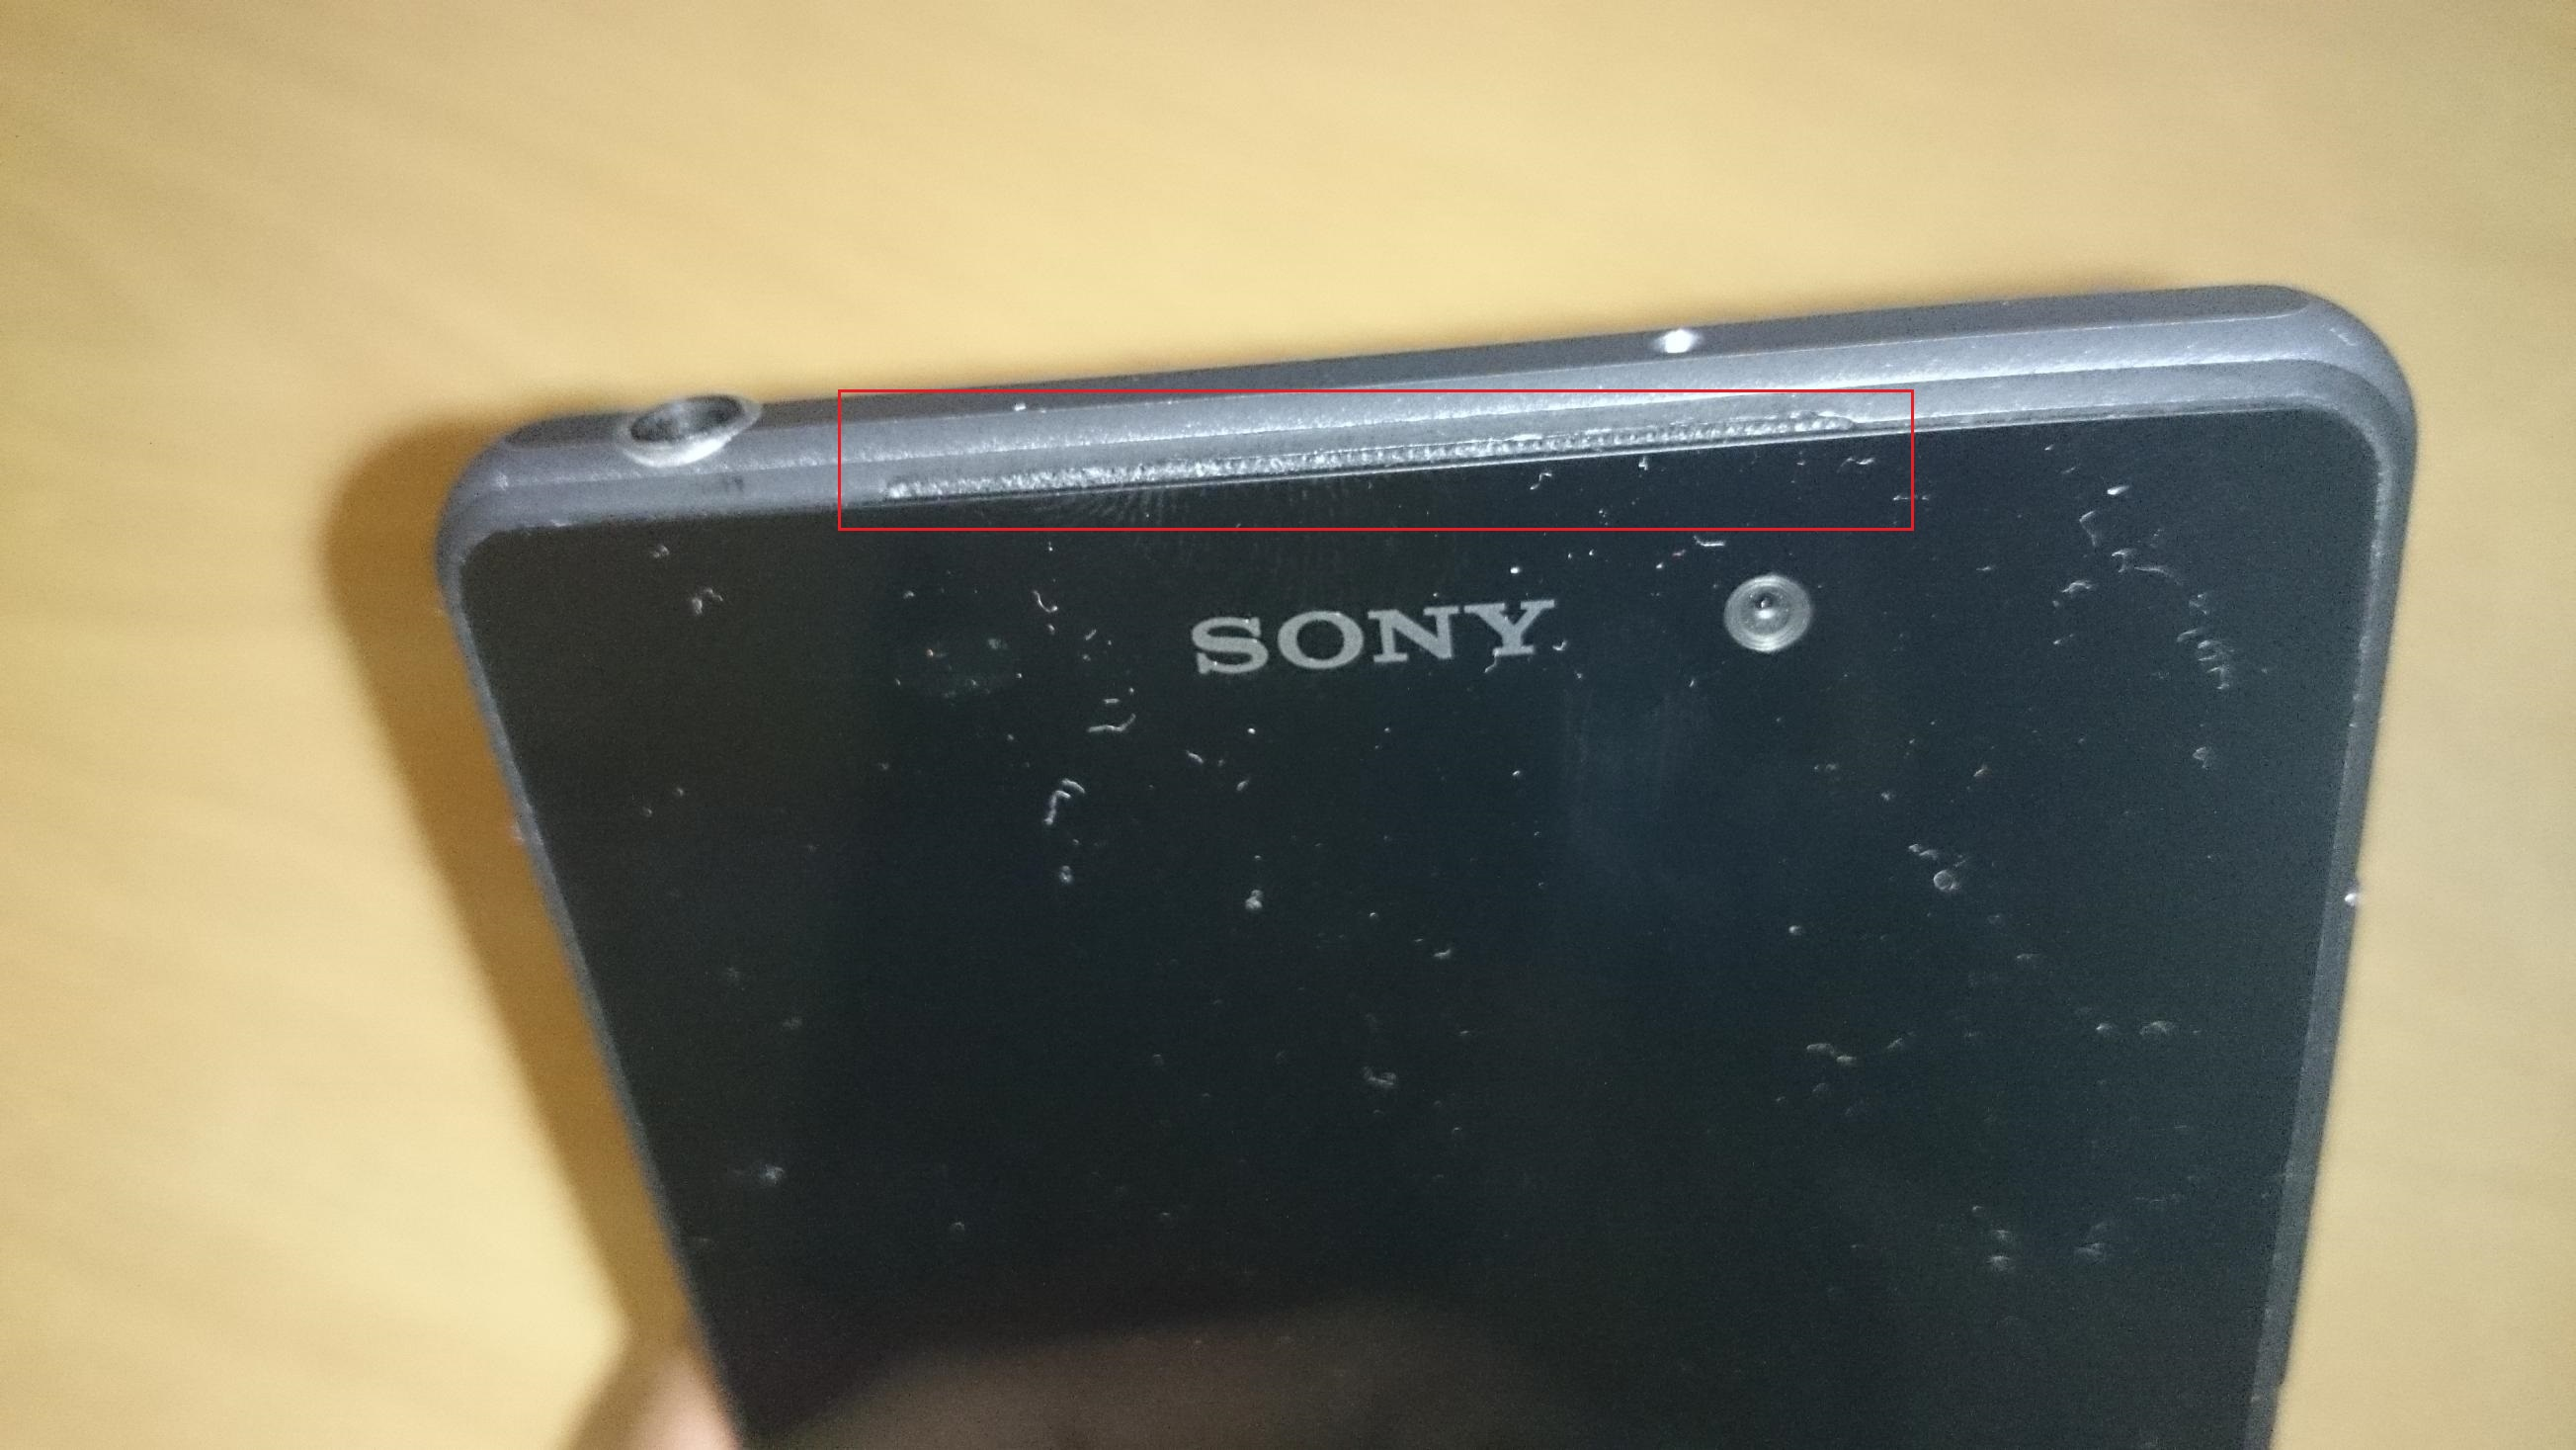 Sony D6503 Sirius Speaker Position at top